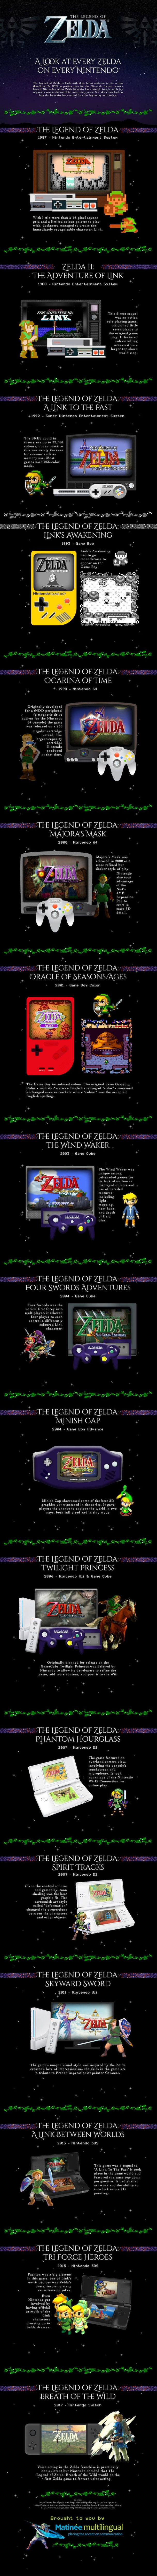 Every Zelda game on every Nintendo console